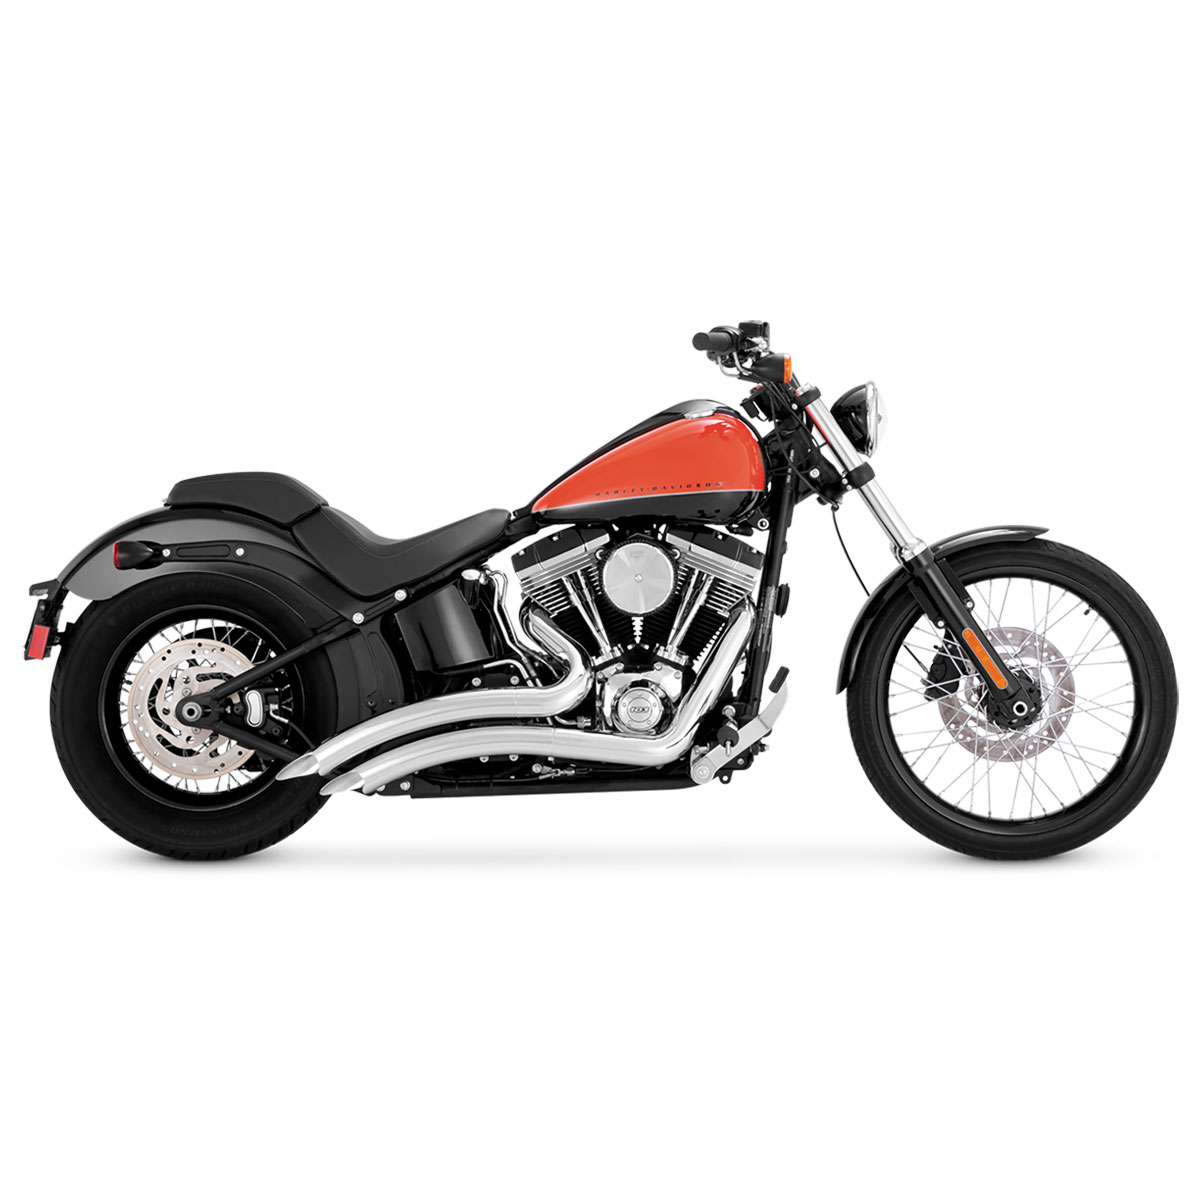 Vance & Hines Big Radius 2 into 2 Exhaust Chrome - 26069